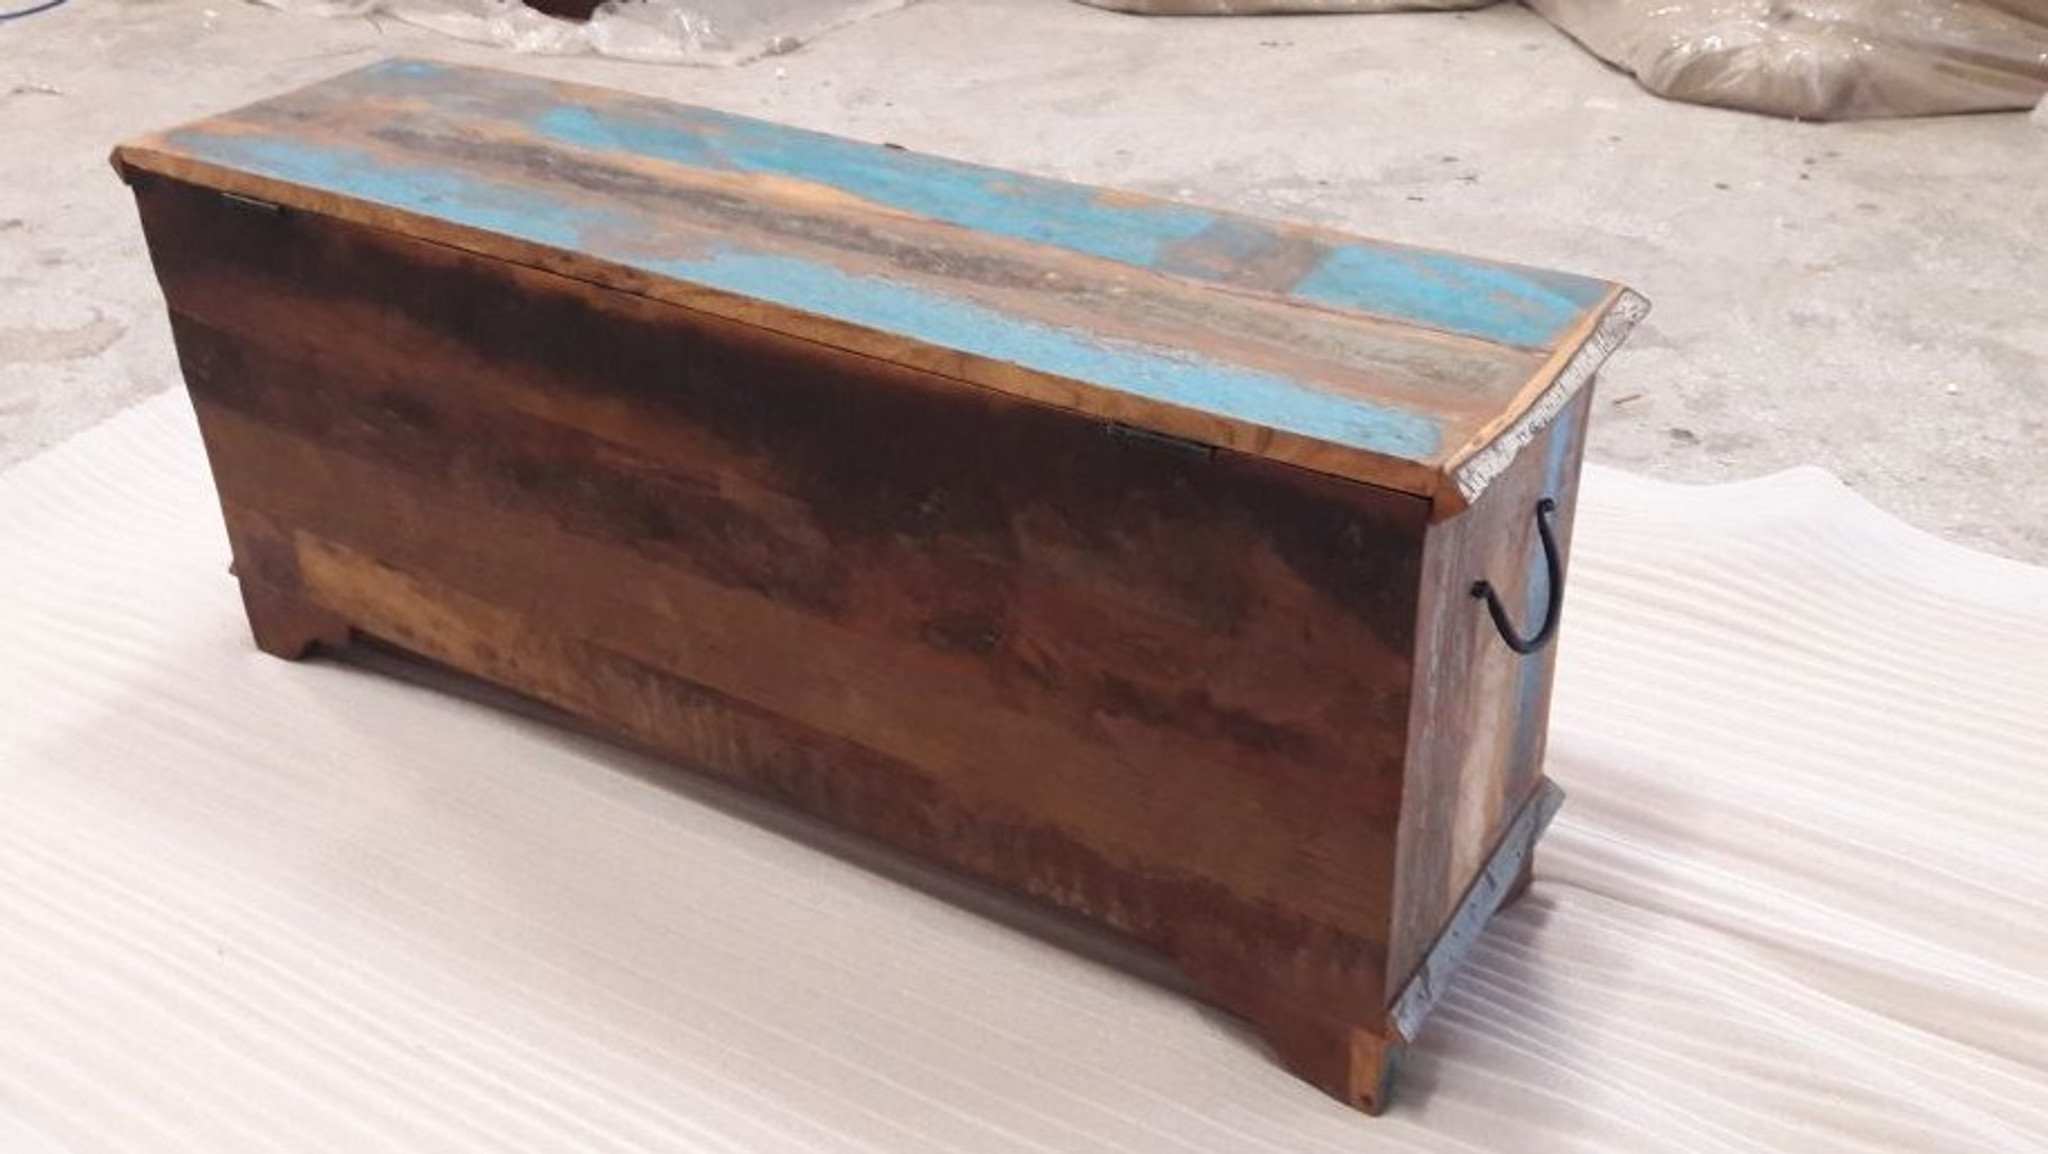 Reclaimed wood trunk